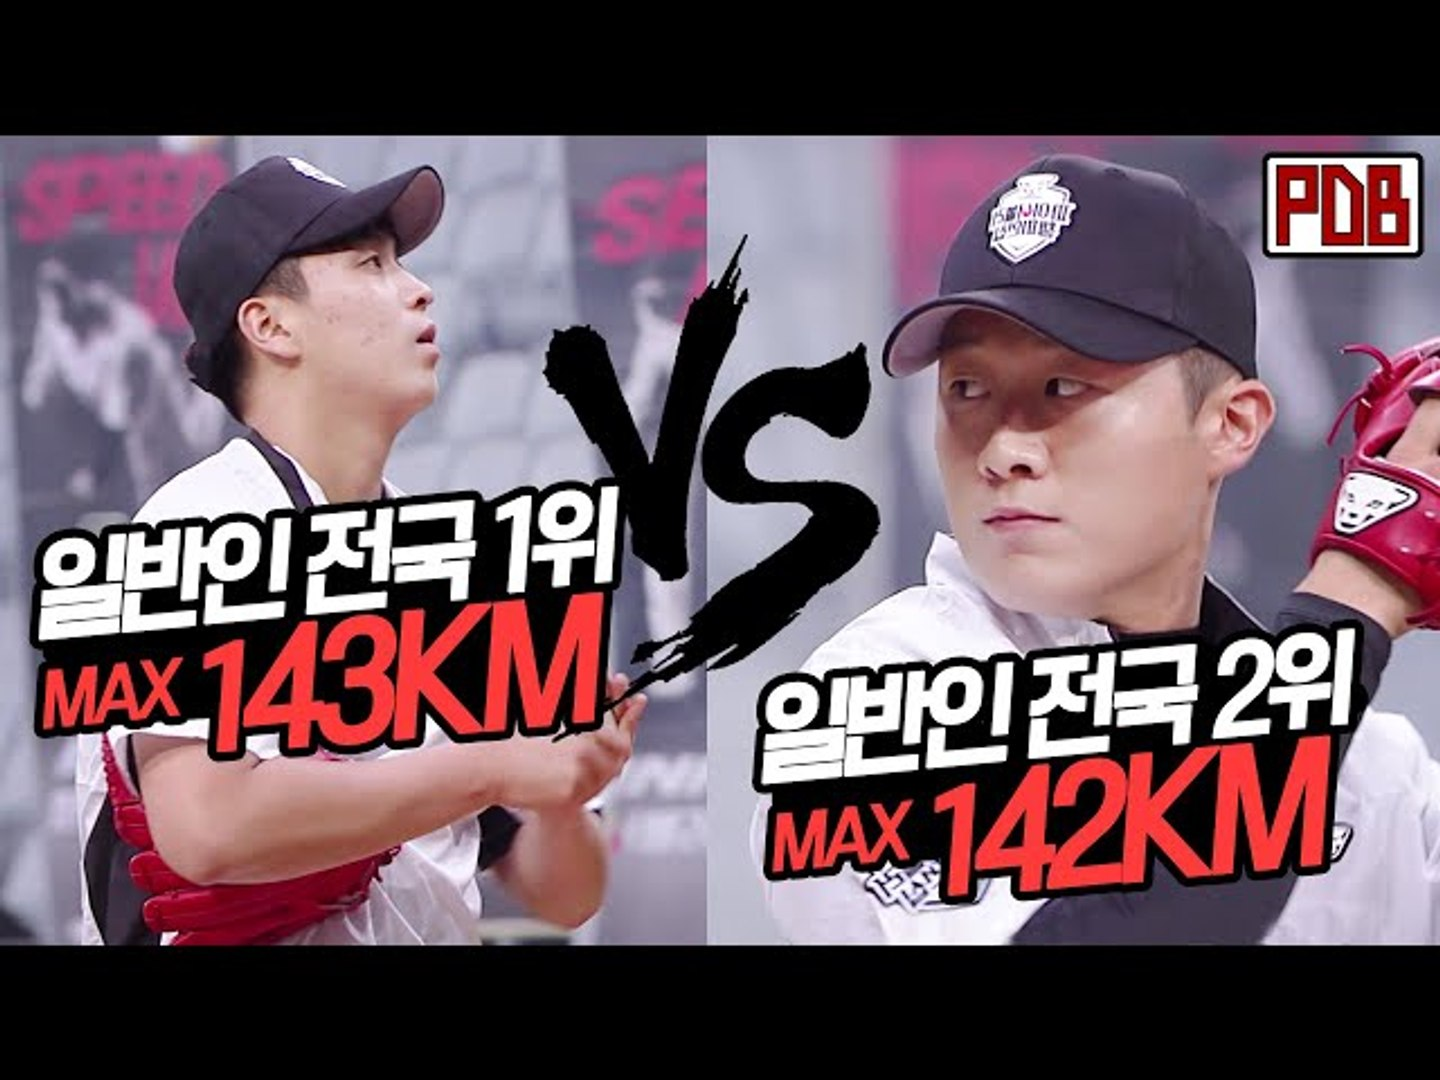 Players who throws the 1st, 2nd fastest ball in Korea at Gocheok Skydome